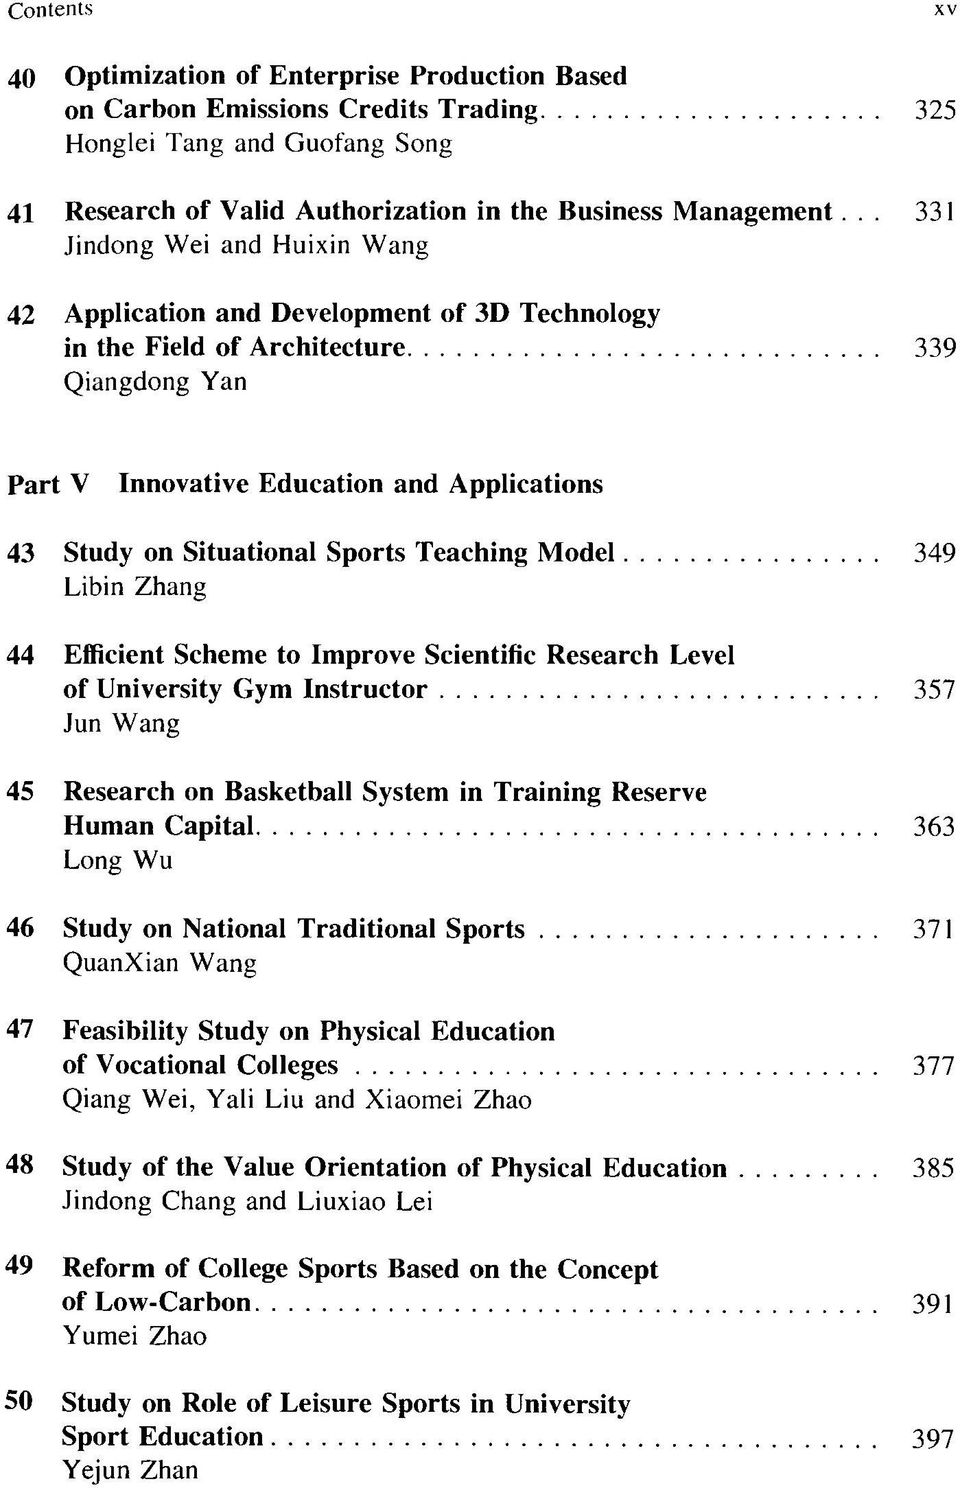 Sports Teaching Model 349 Libin Zhang 44 Efficient Scheme to Improve Scientific Research Level of University Gym Instructor 357 Jun Wang 45 Research on Basketball System in Training Reserve Human